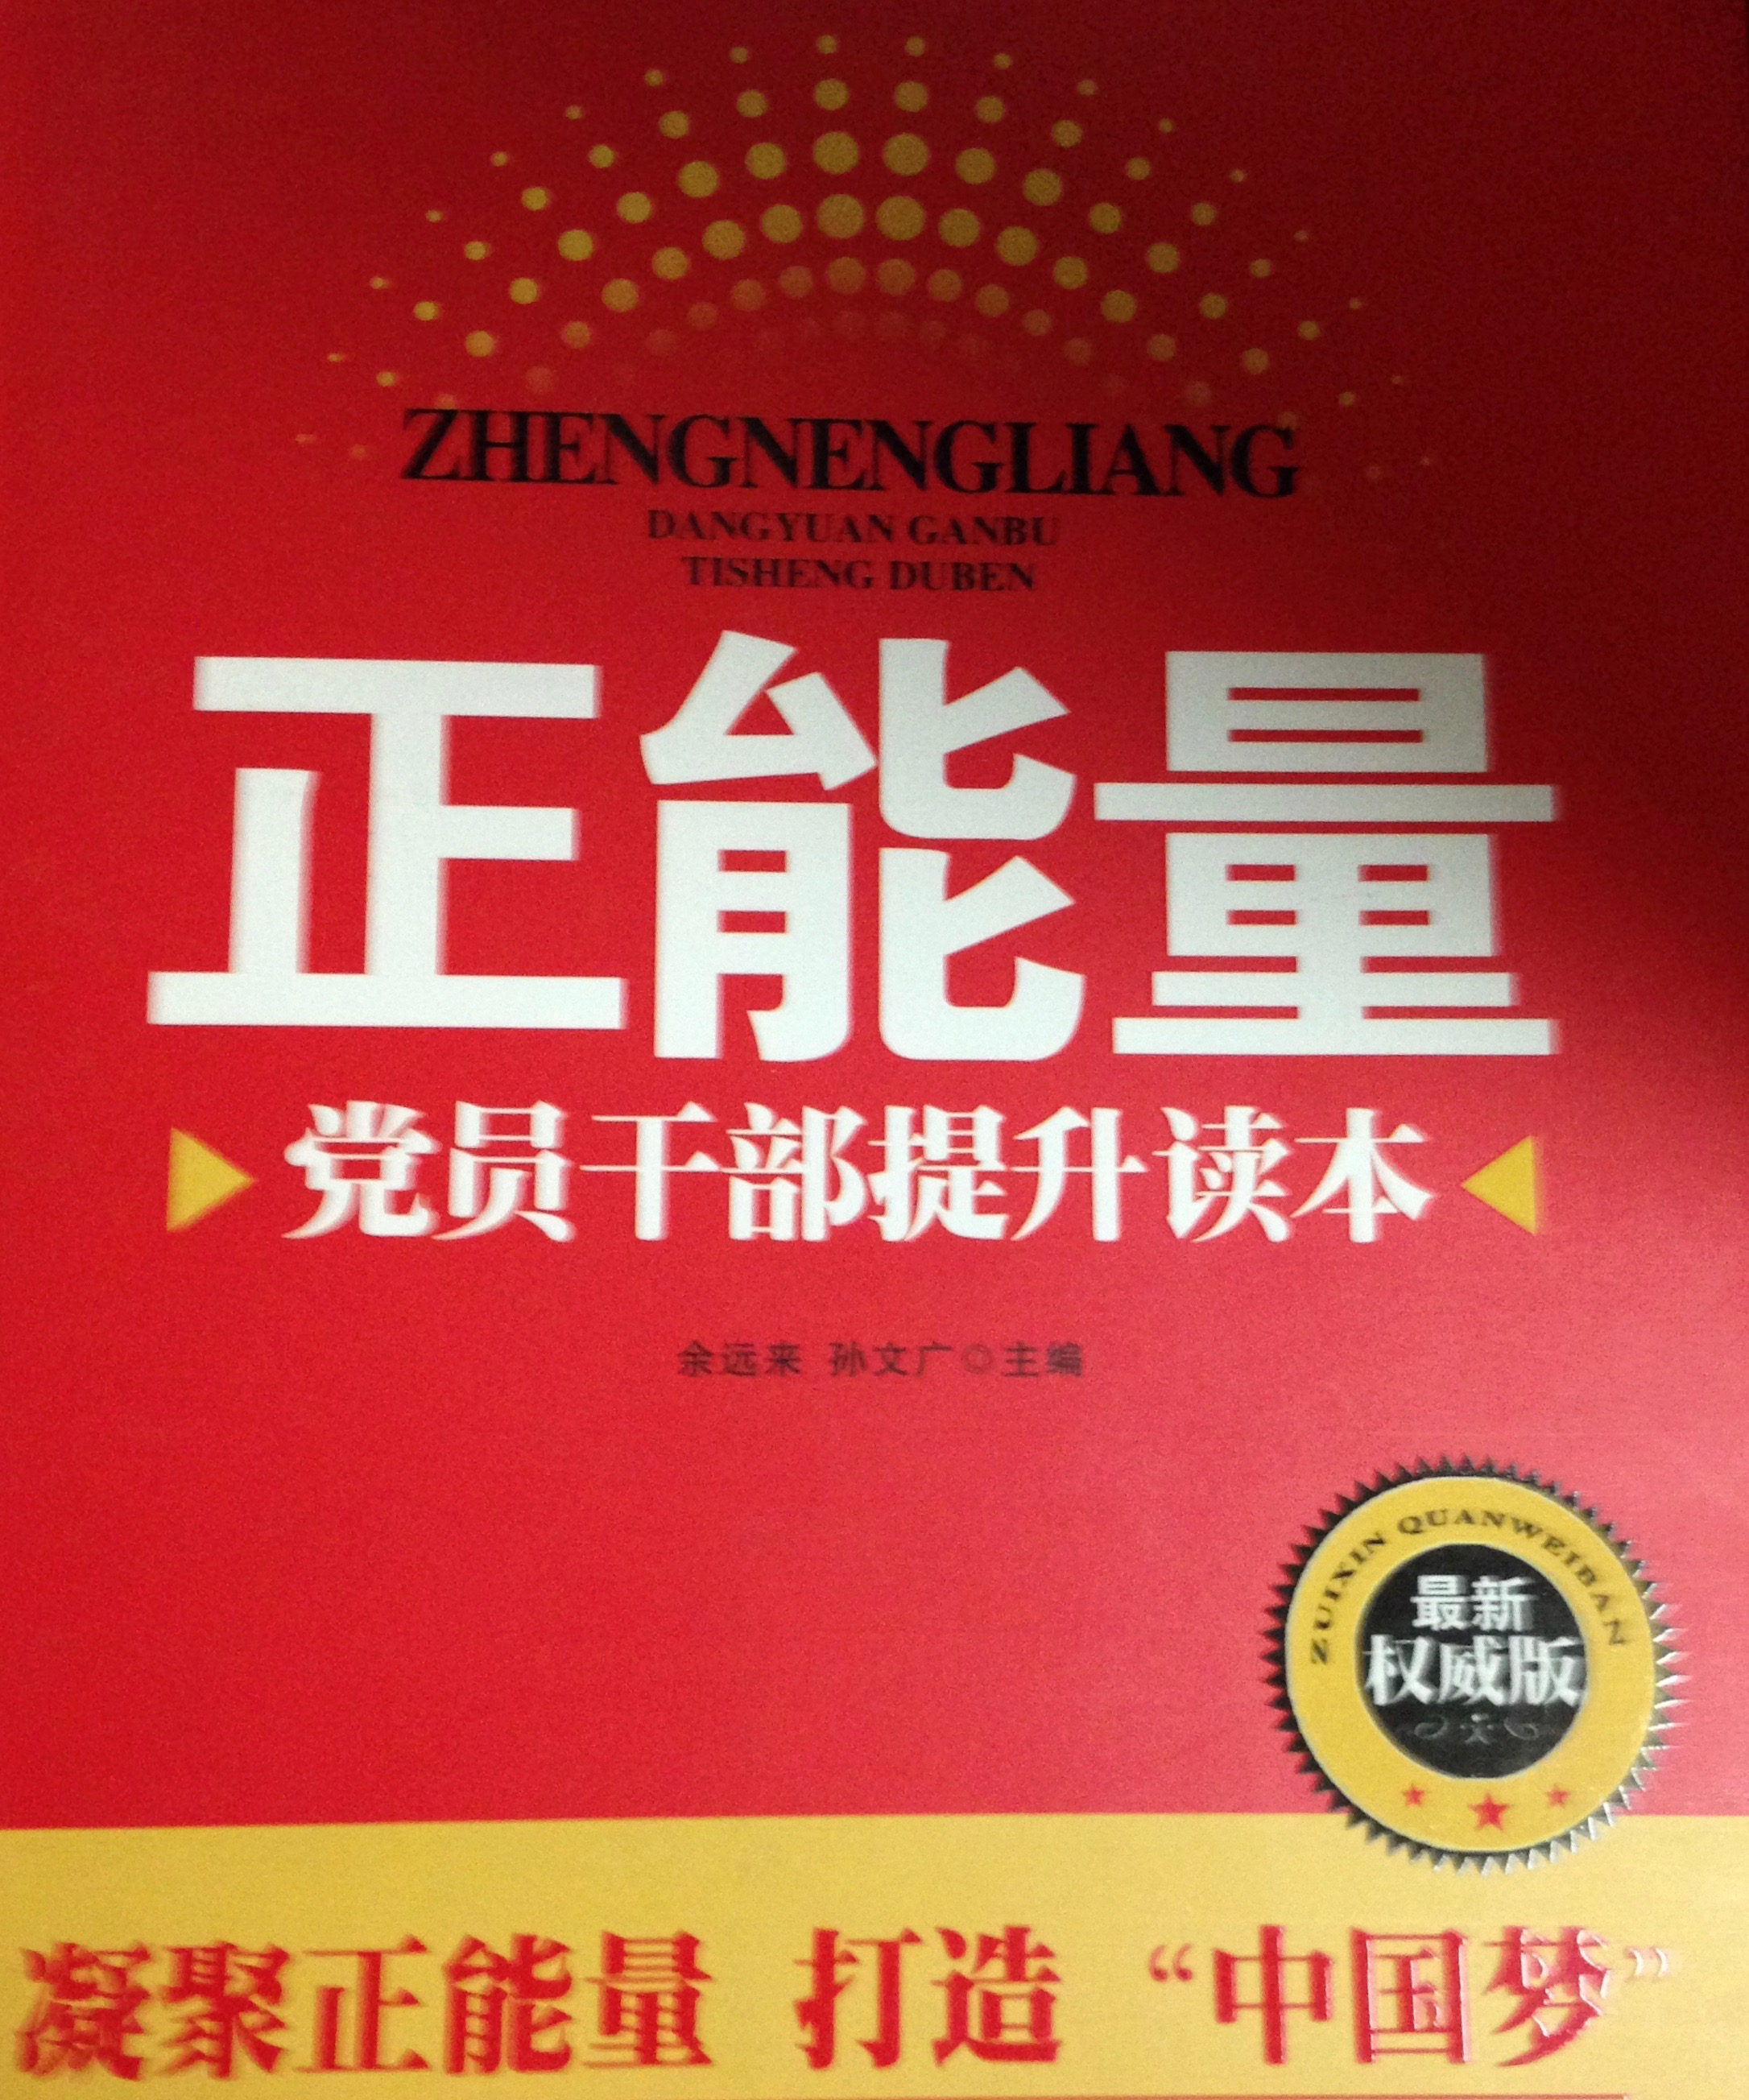 Image shows book cover of a volume entitled Zhengnengliang; it is a training volume for CCP cadres.